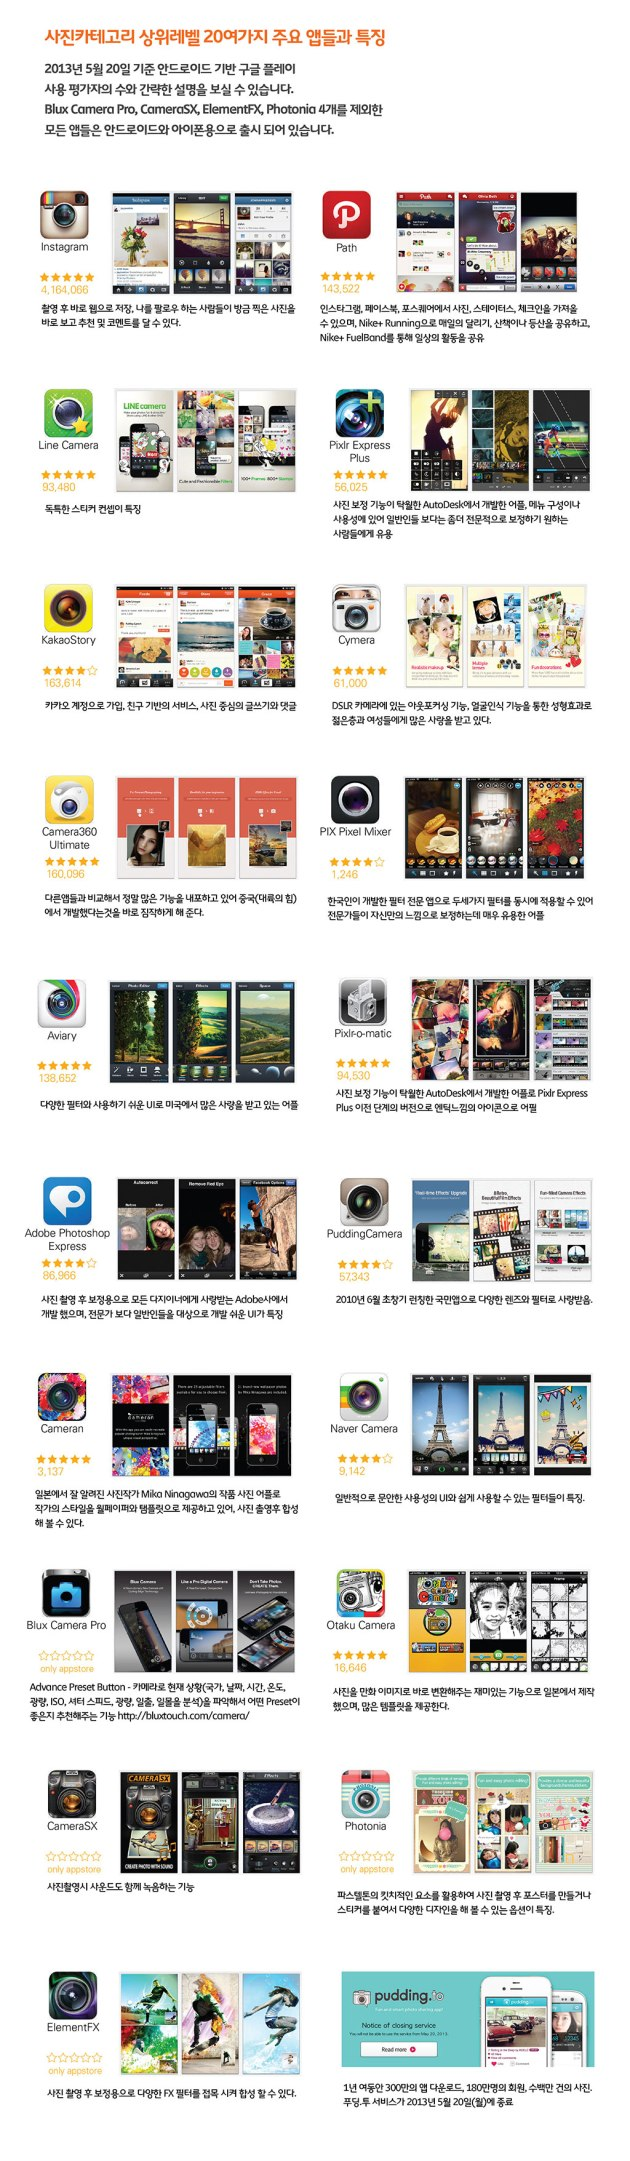 Smartphone-Camera-Apps-Category_wordpress2